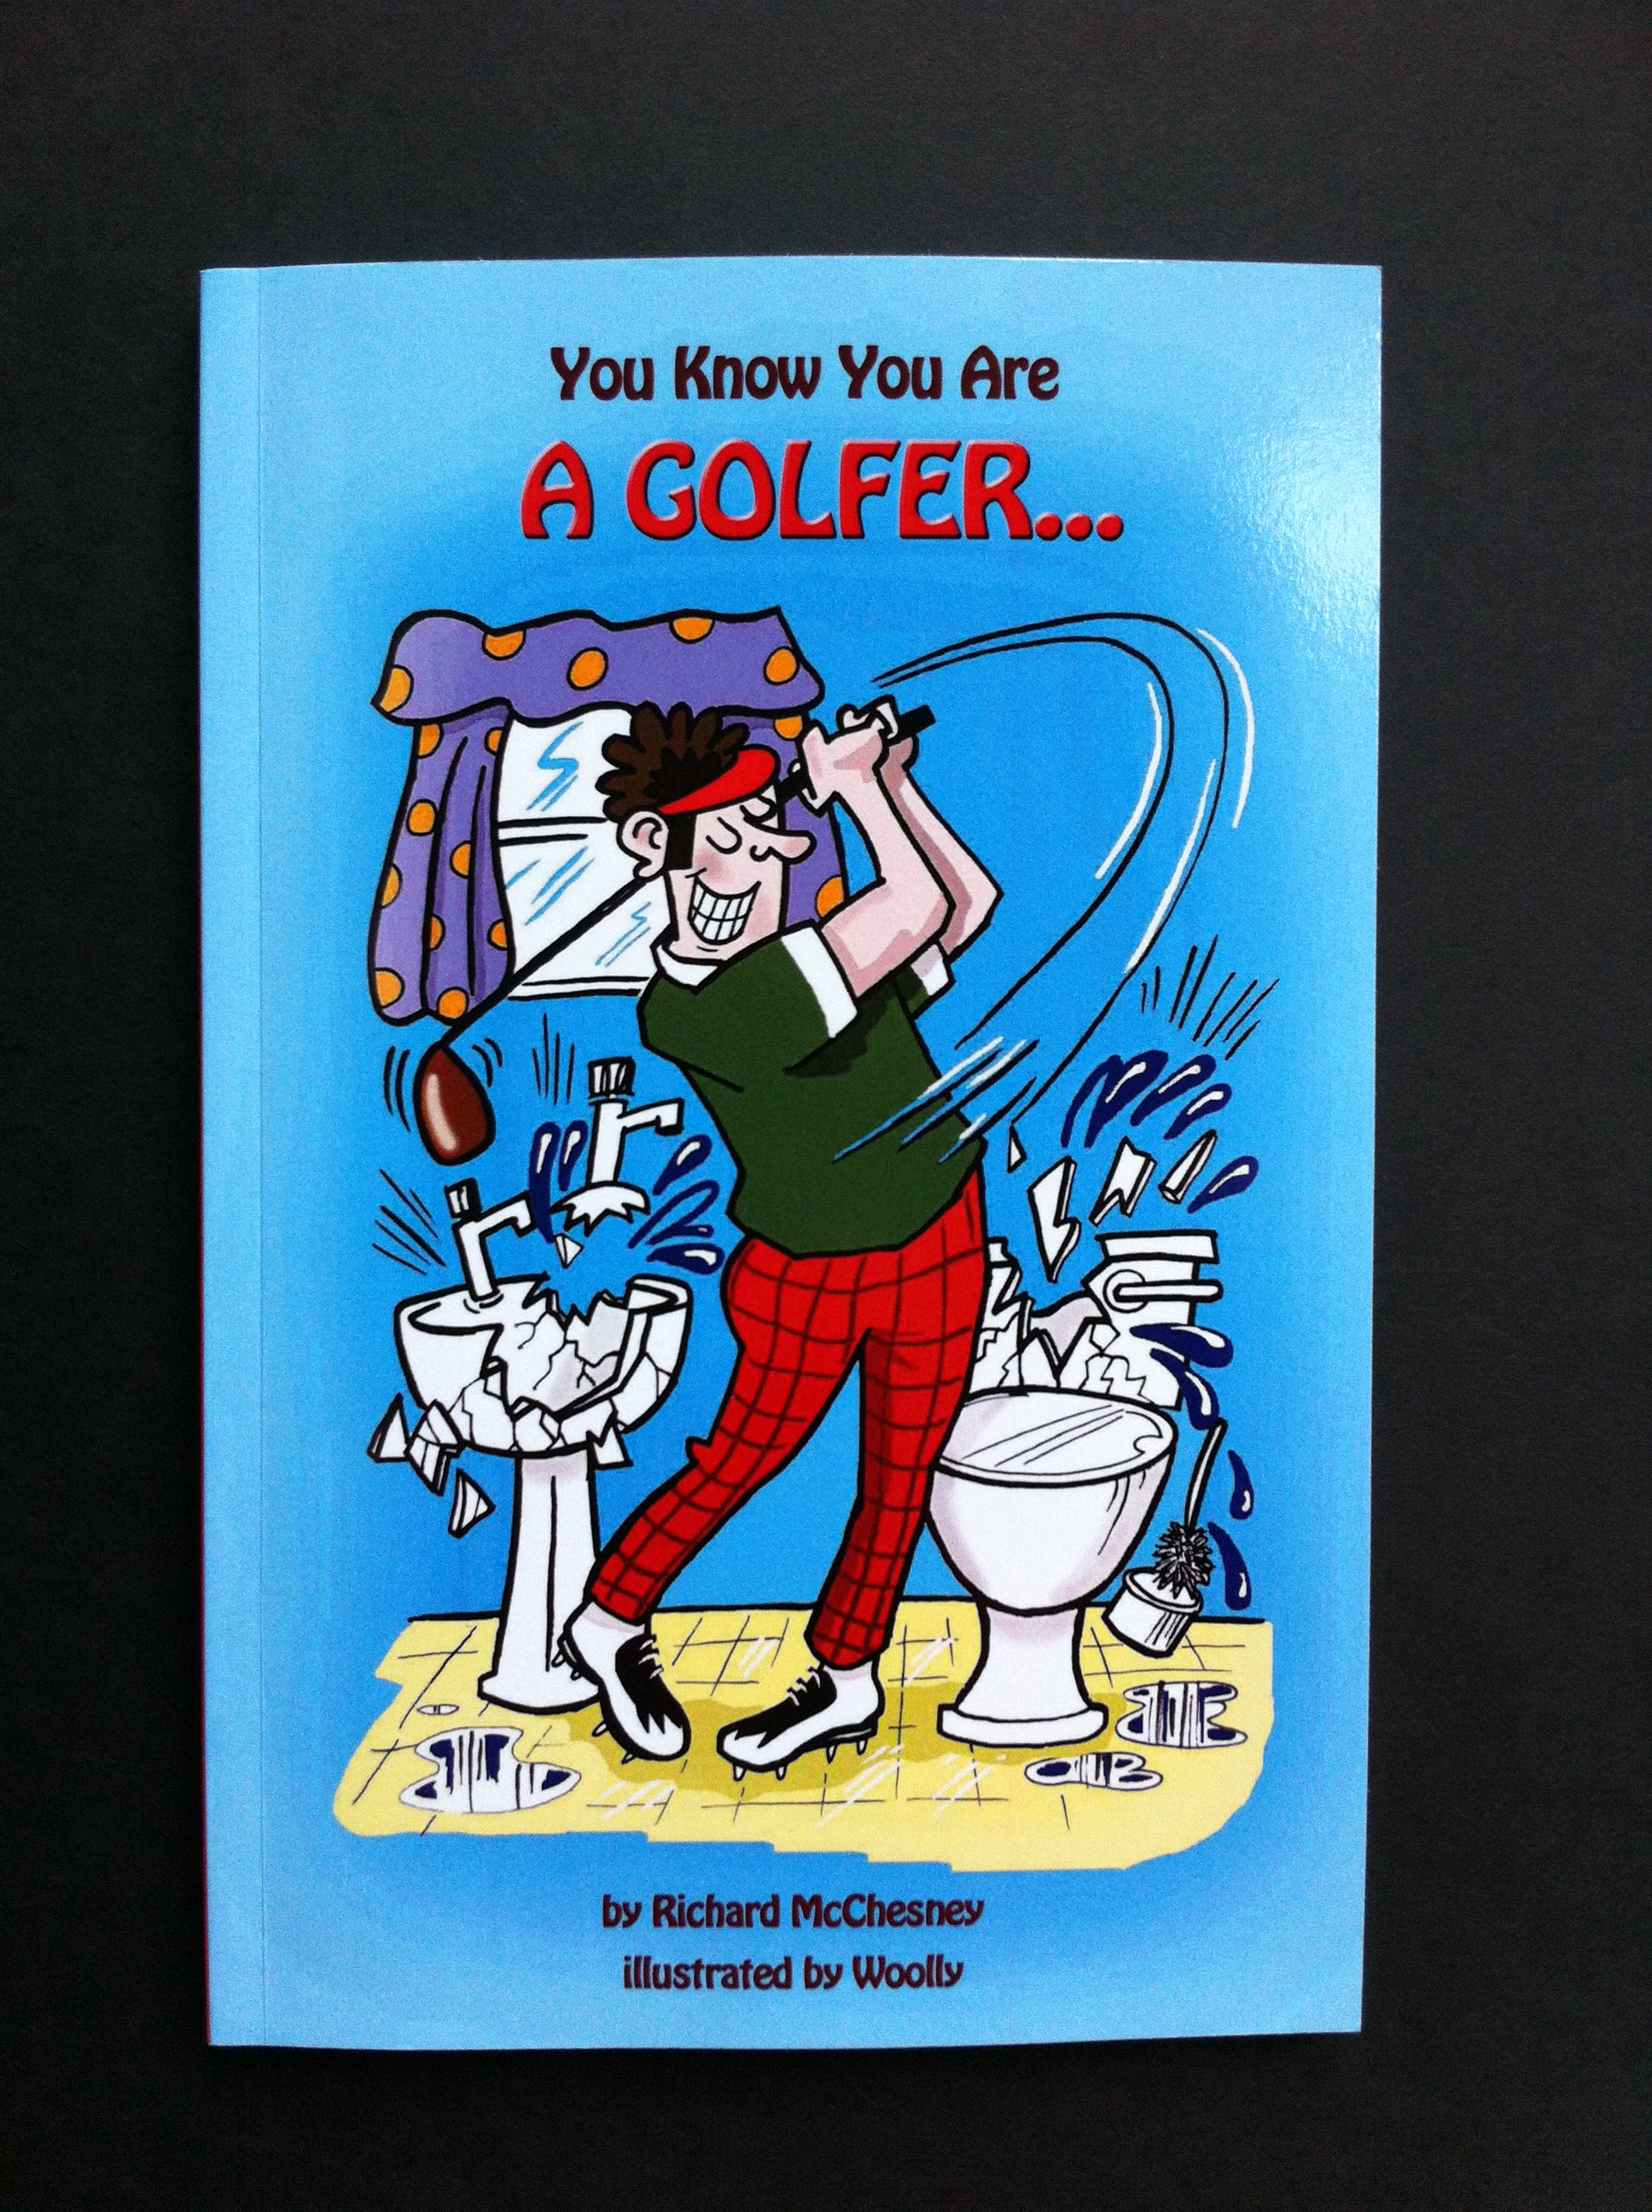 You Know You Are A Golfer Book Cover